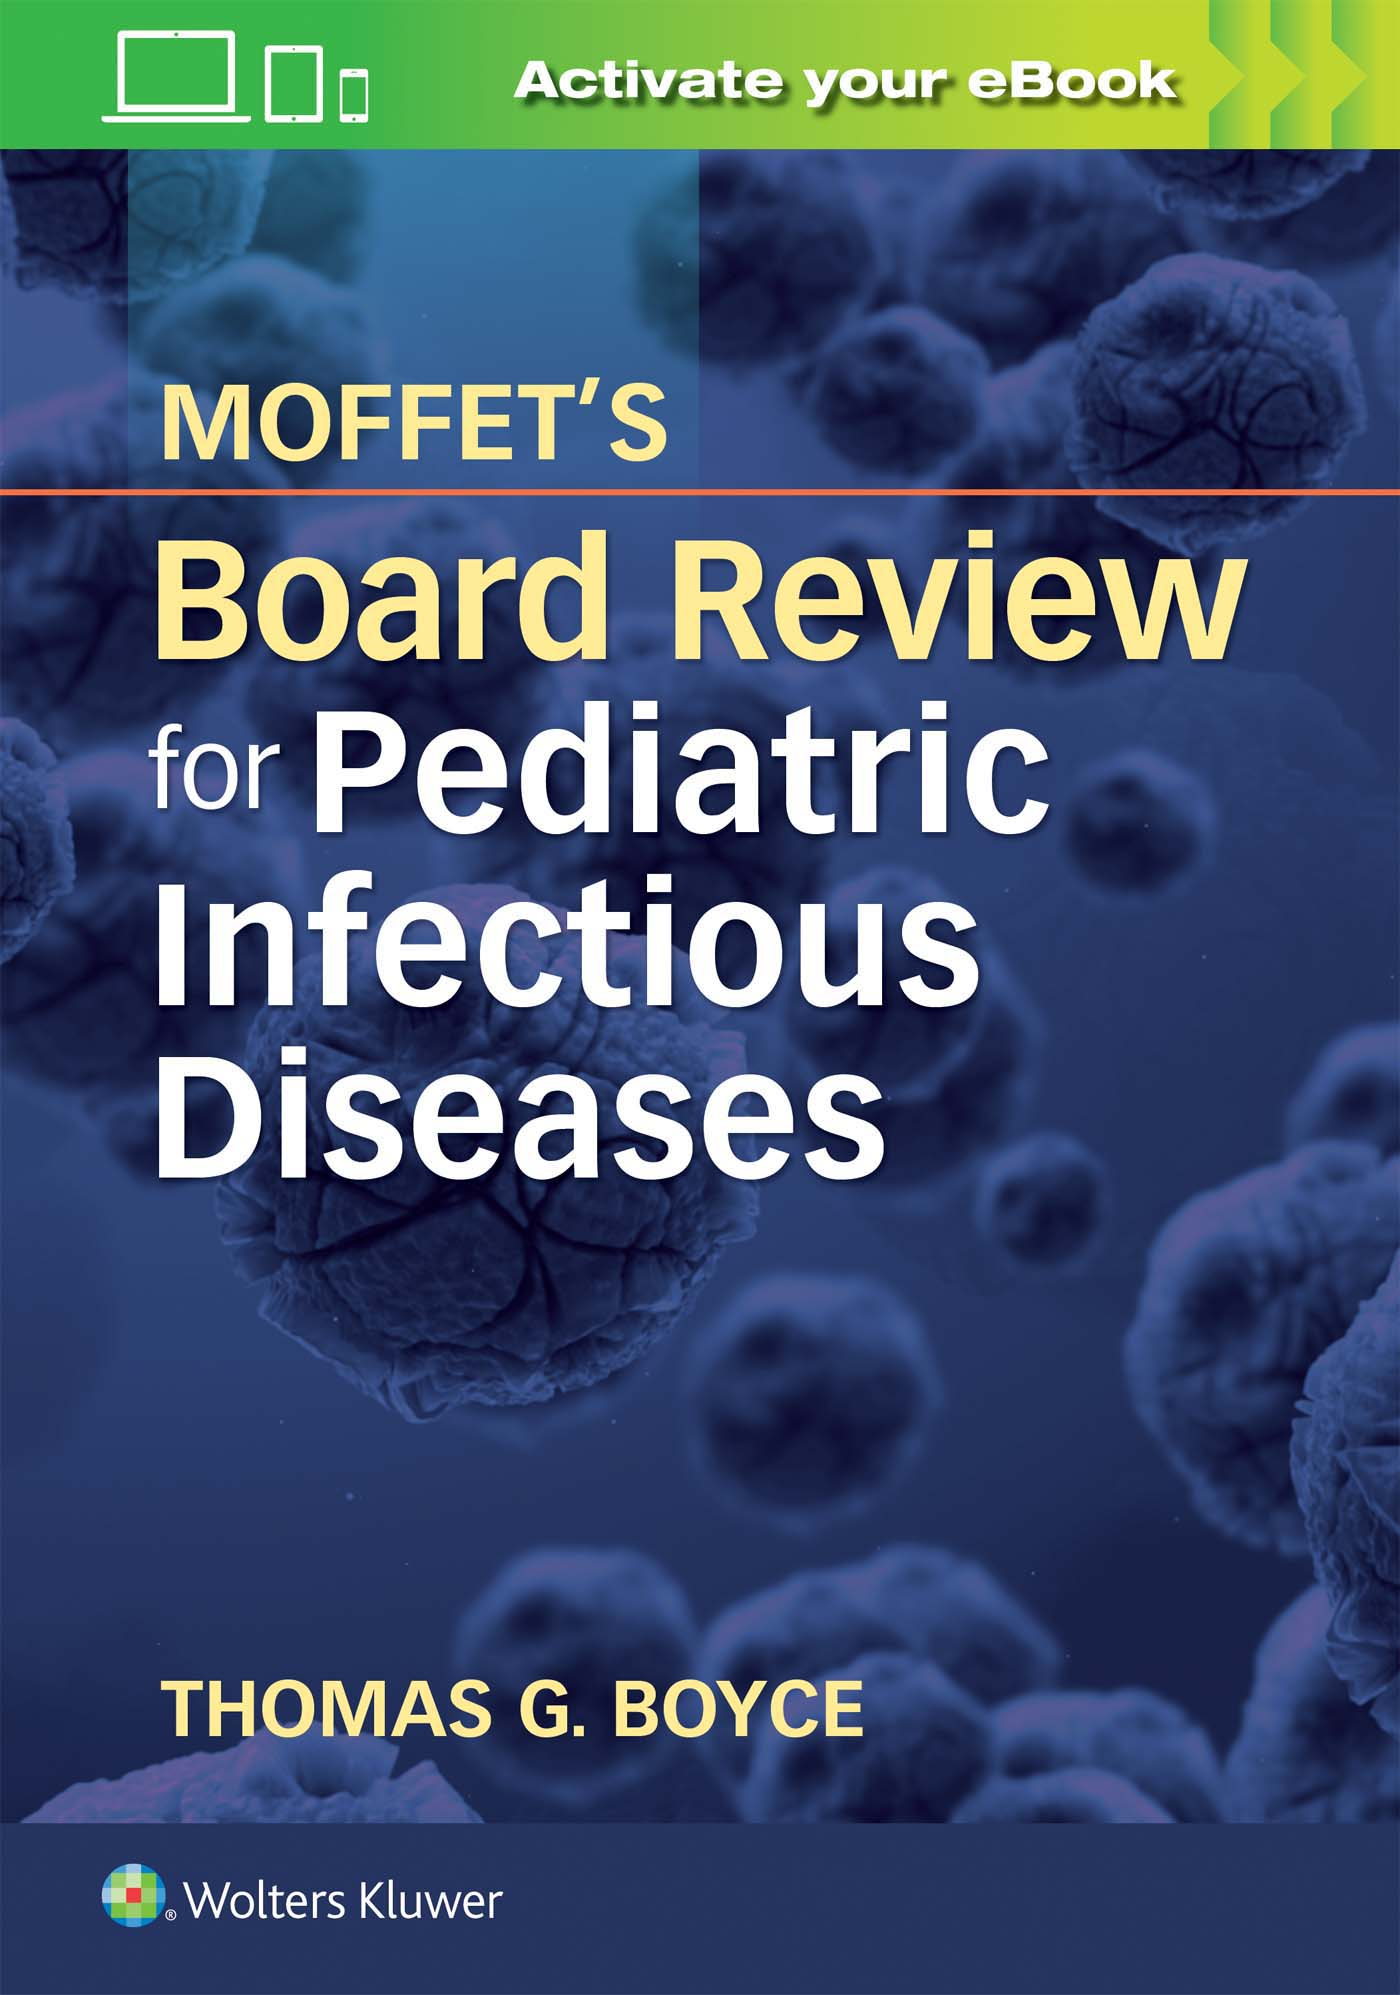 moffet s board review for pediatric infectious disease rh shop lww com LSU Pediatric Board Review MedStudy Pediatrics